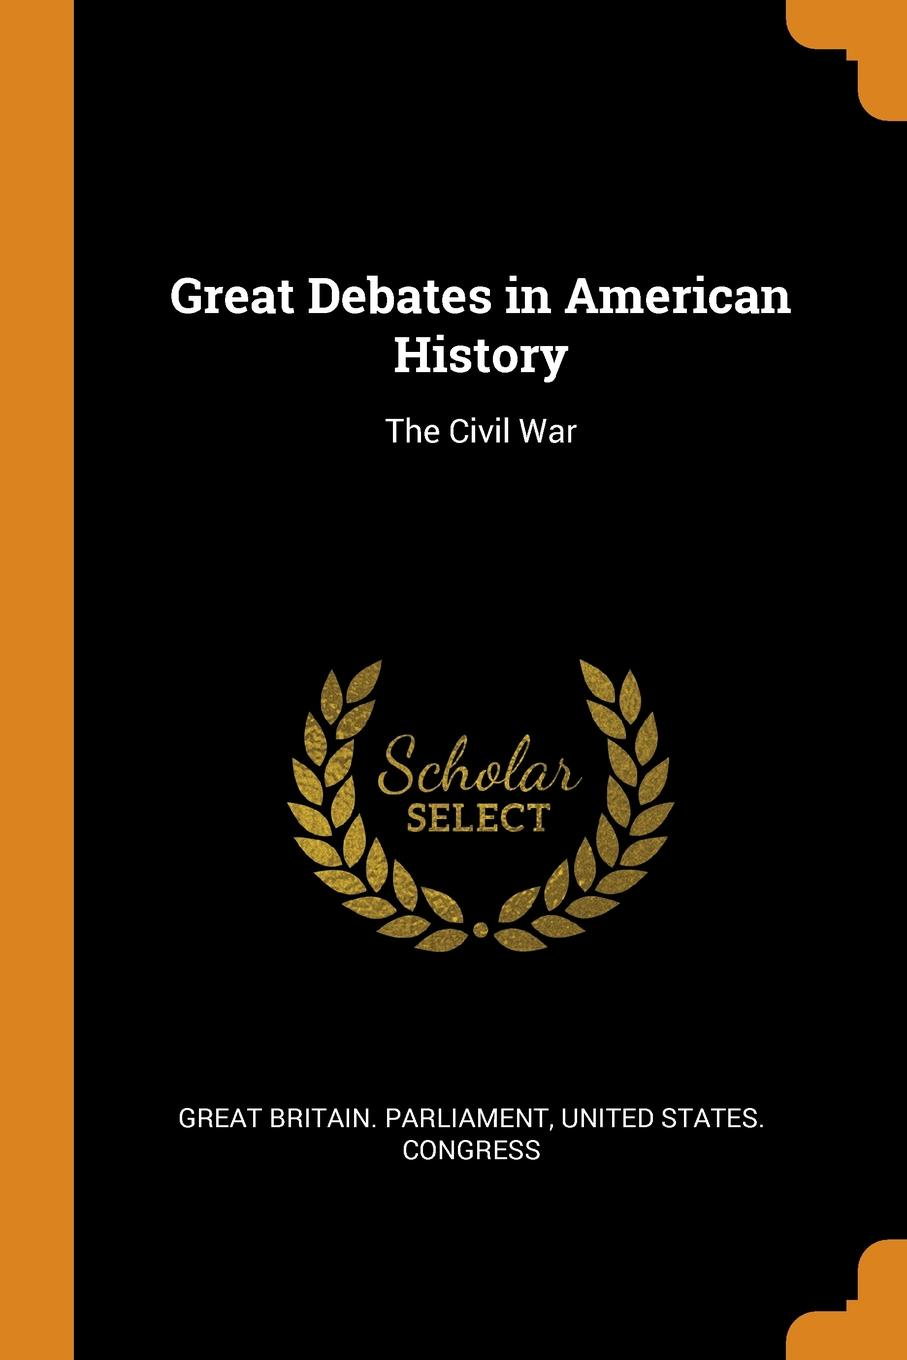 Great Debates in American History. The Civil War charles richard tuttle the centennial northwest an illustrated history of the northwest being a full and complete civil political and military history of this great section of the united states from its earliest settlement to the present time